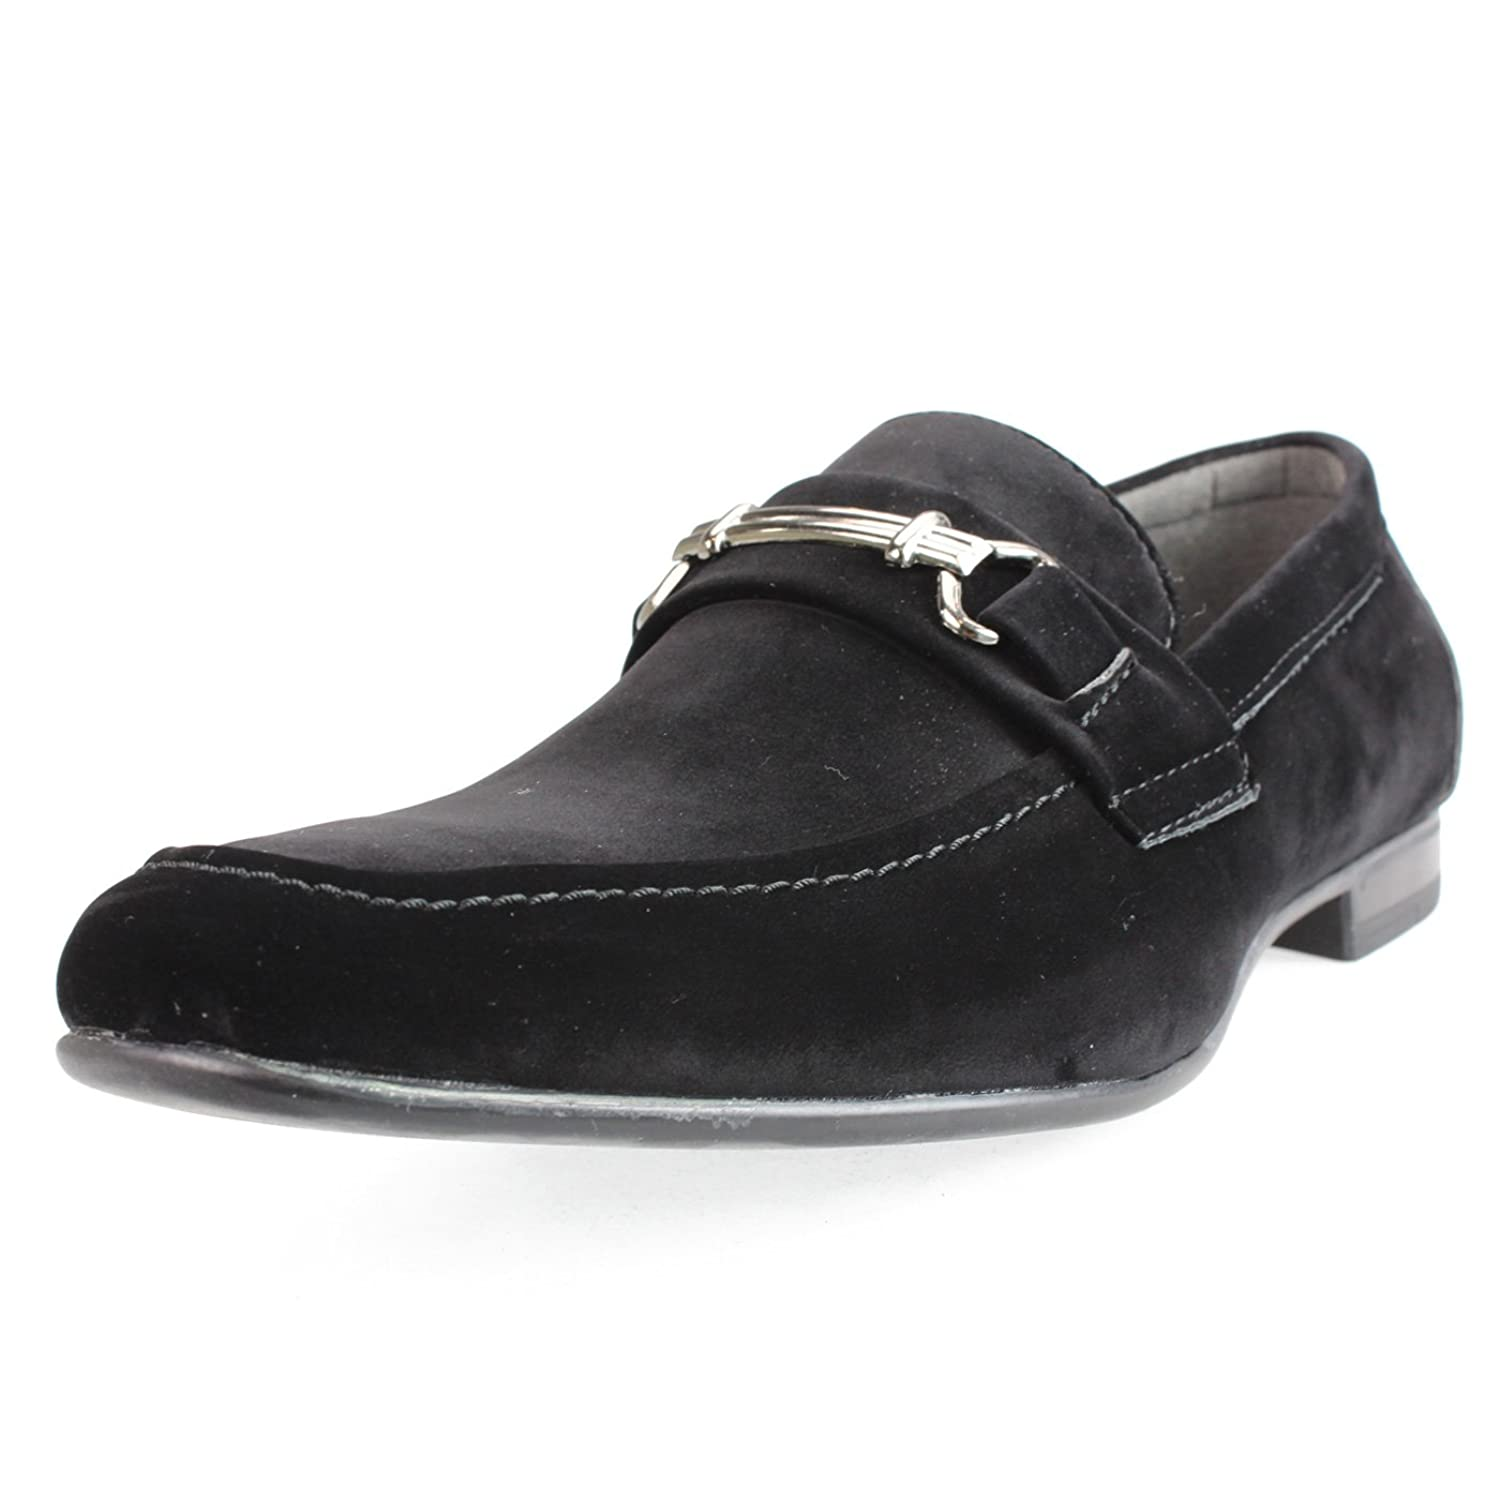 An By Lucius Mens Casual Shoes Driving Bit D Island Slip On Mocasine Loafers Black Original Boat Shoe Opera Moccasin Training Flat Low